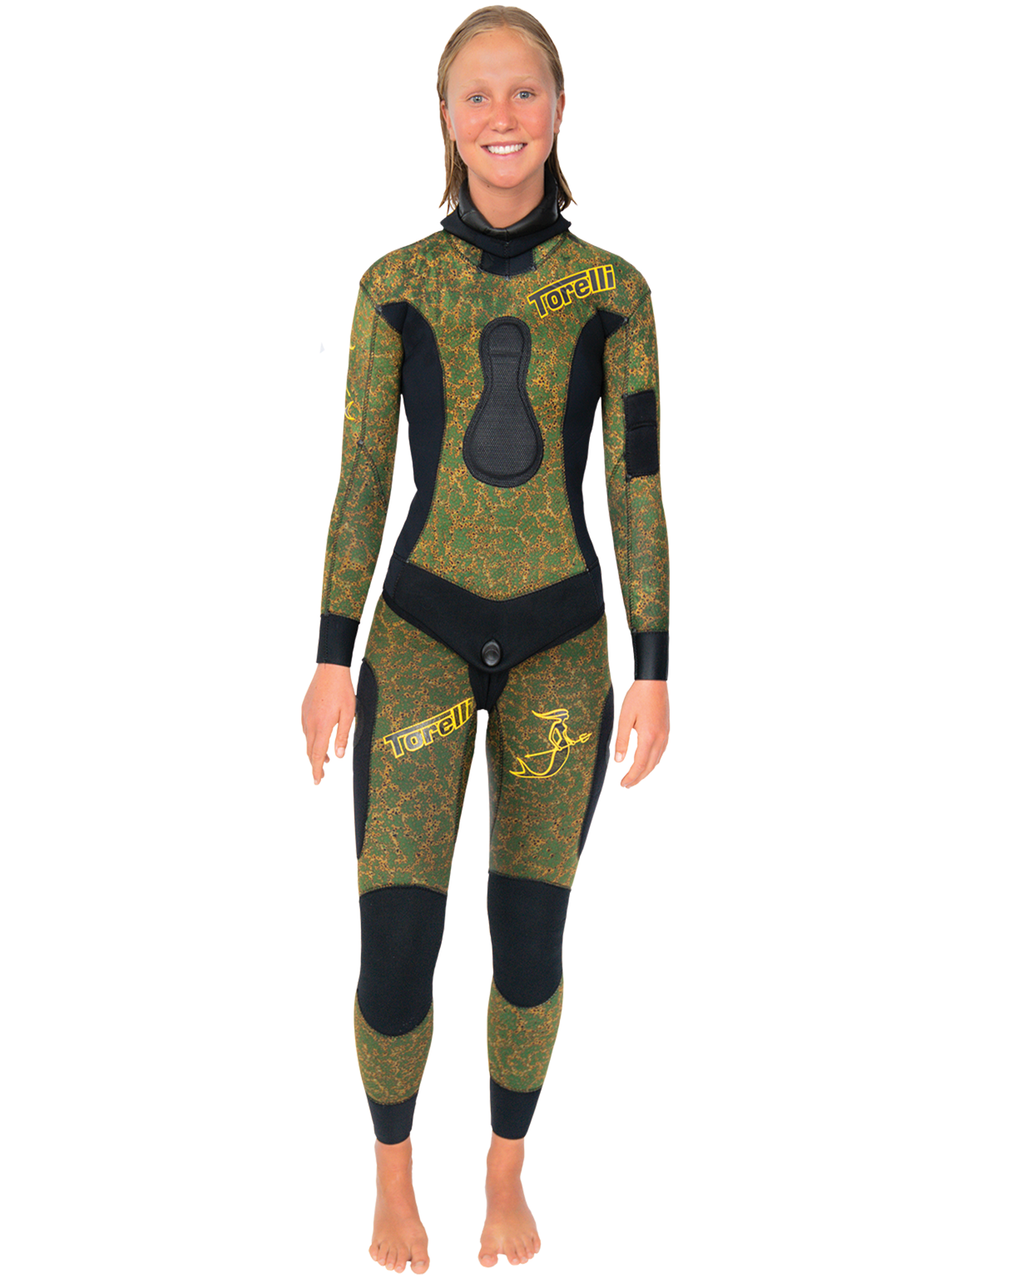 TORELLI WOMENS 3.5MM GOODOO SPEARFISHING WETSUIT